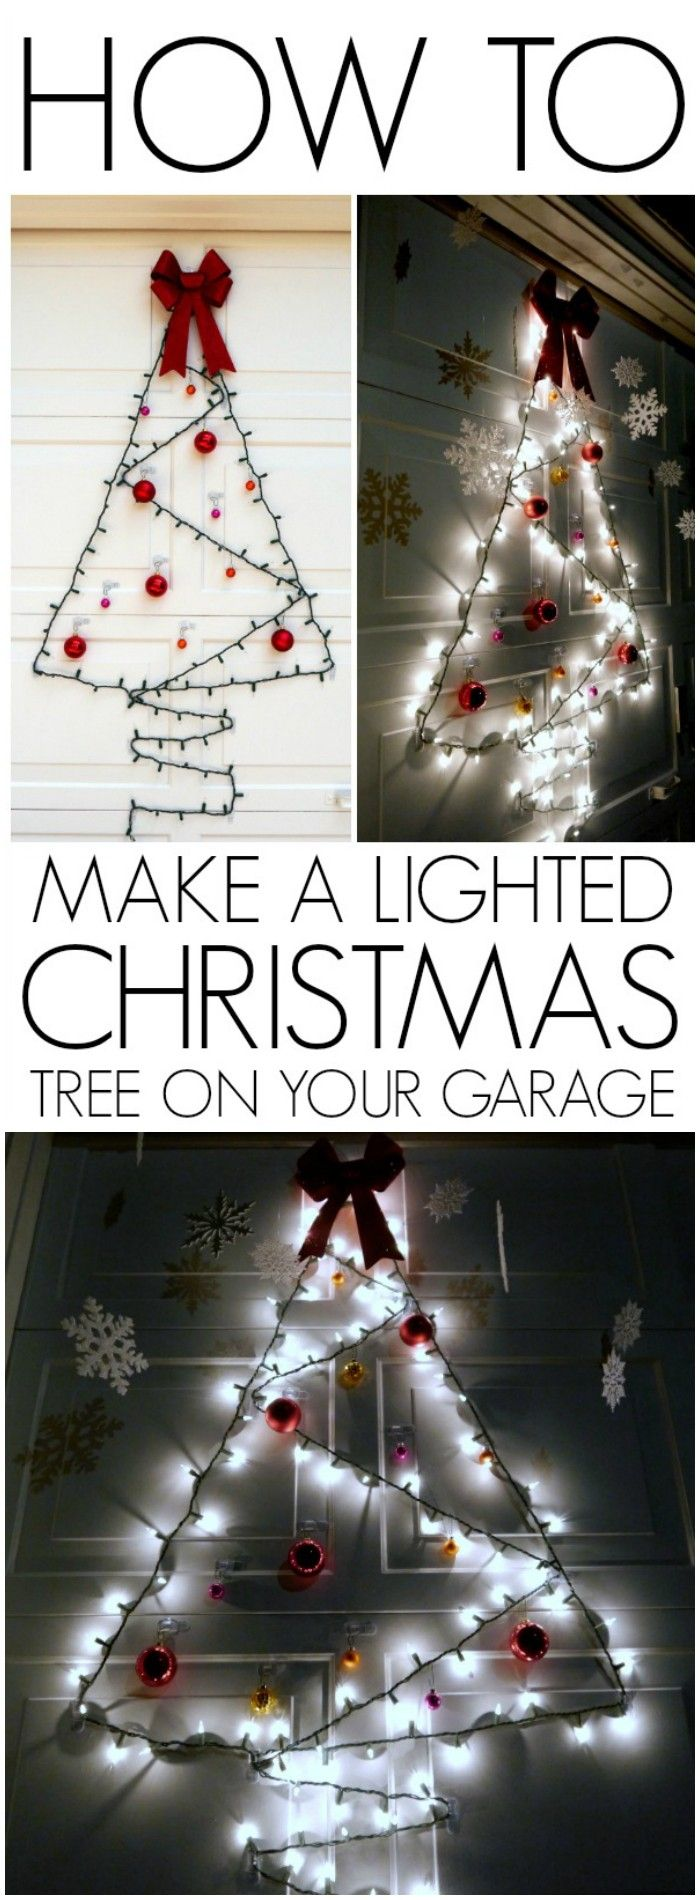 i have a gallery of 21 cheap and easy to create diy outdoor christmas decorations for your inspiration - Diy Outdoor Christmas Decorations Pinterest